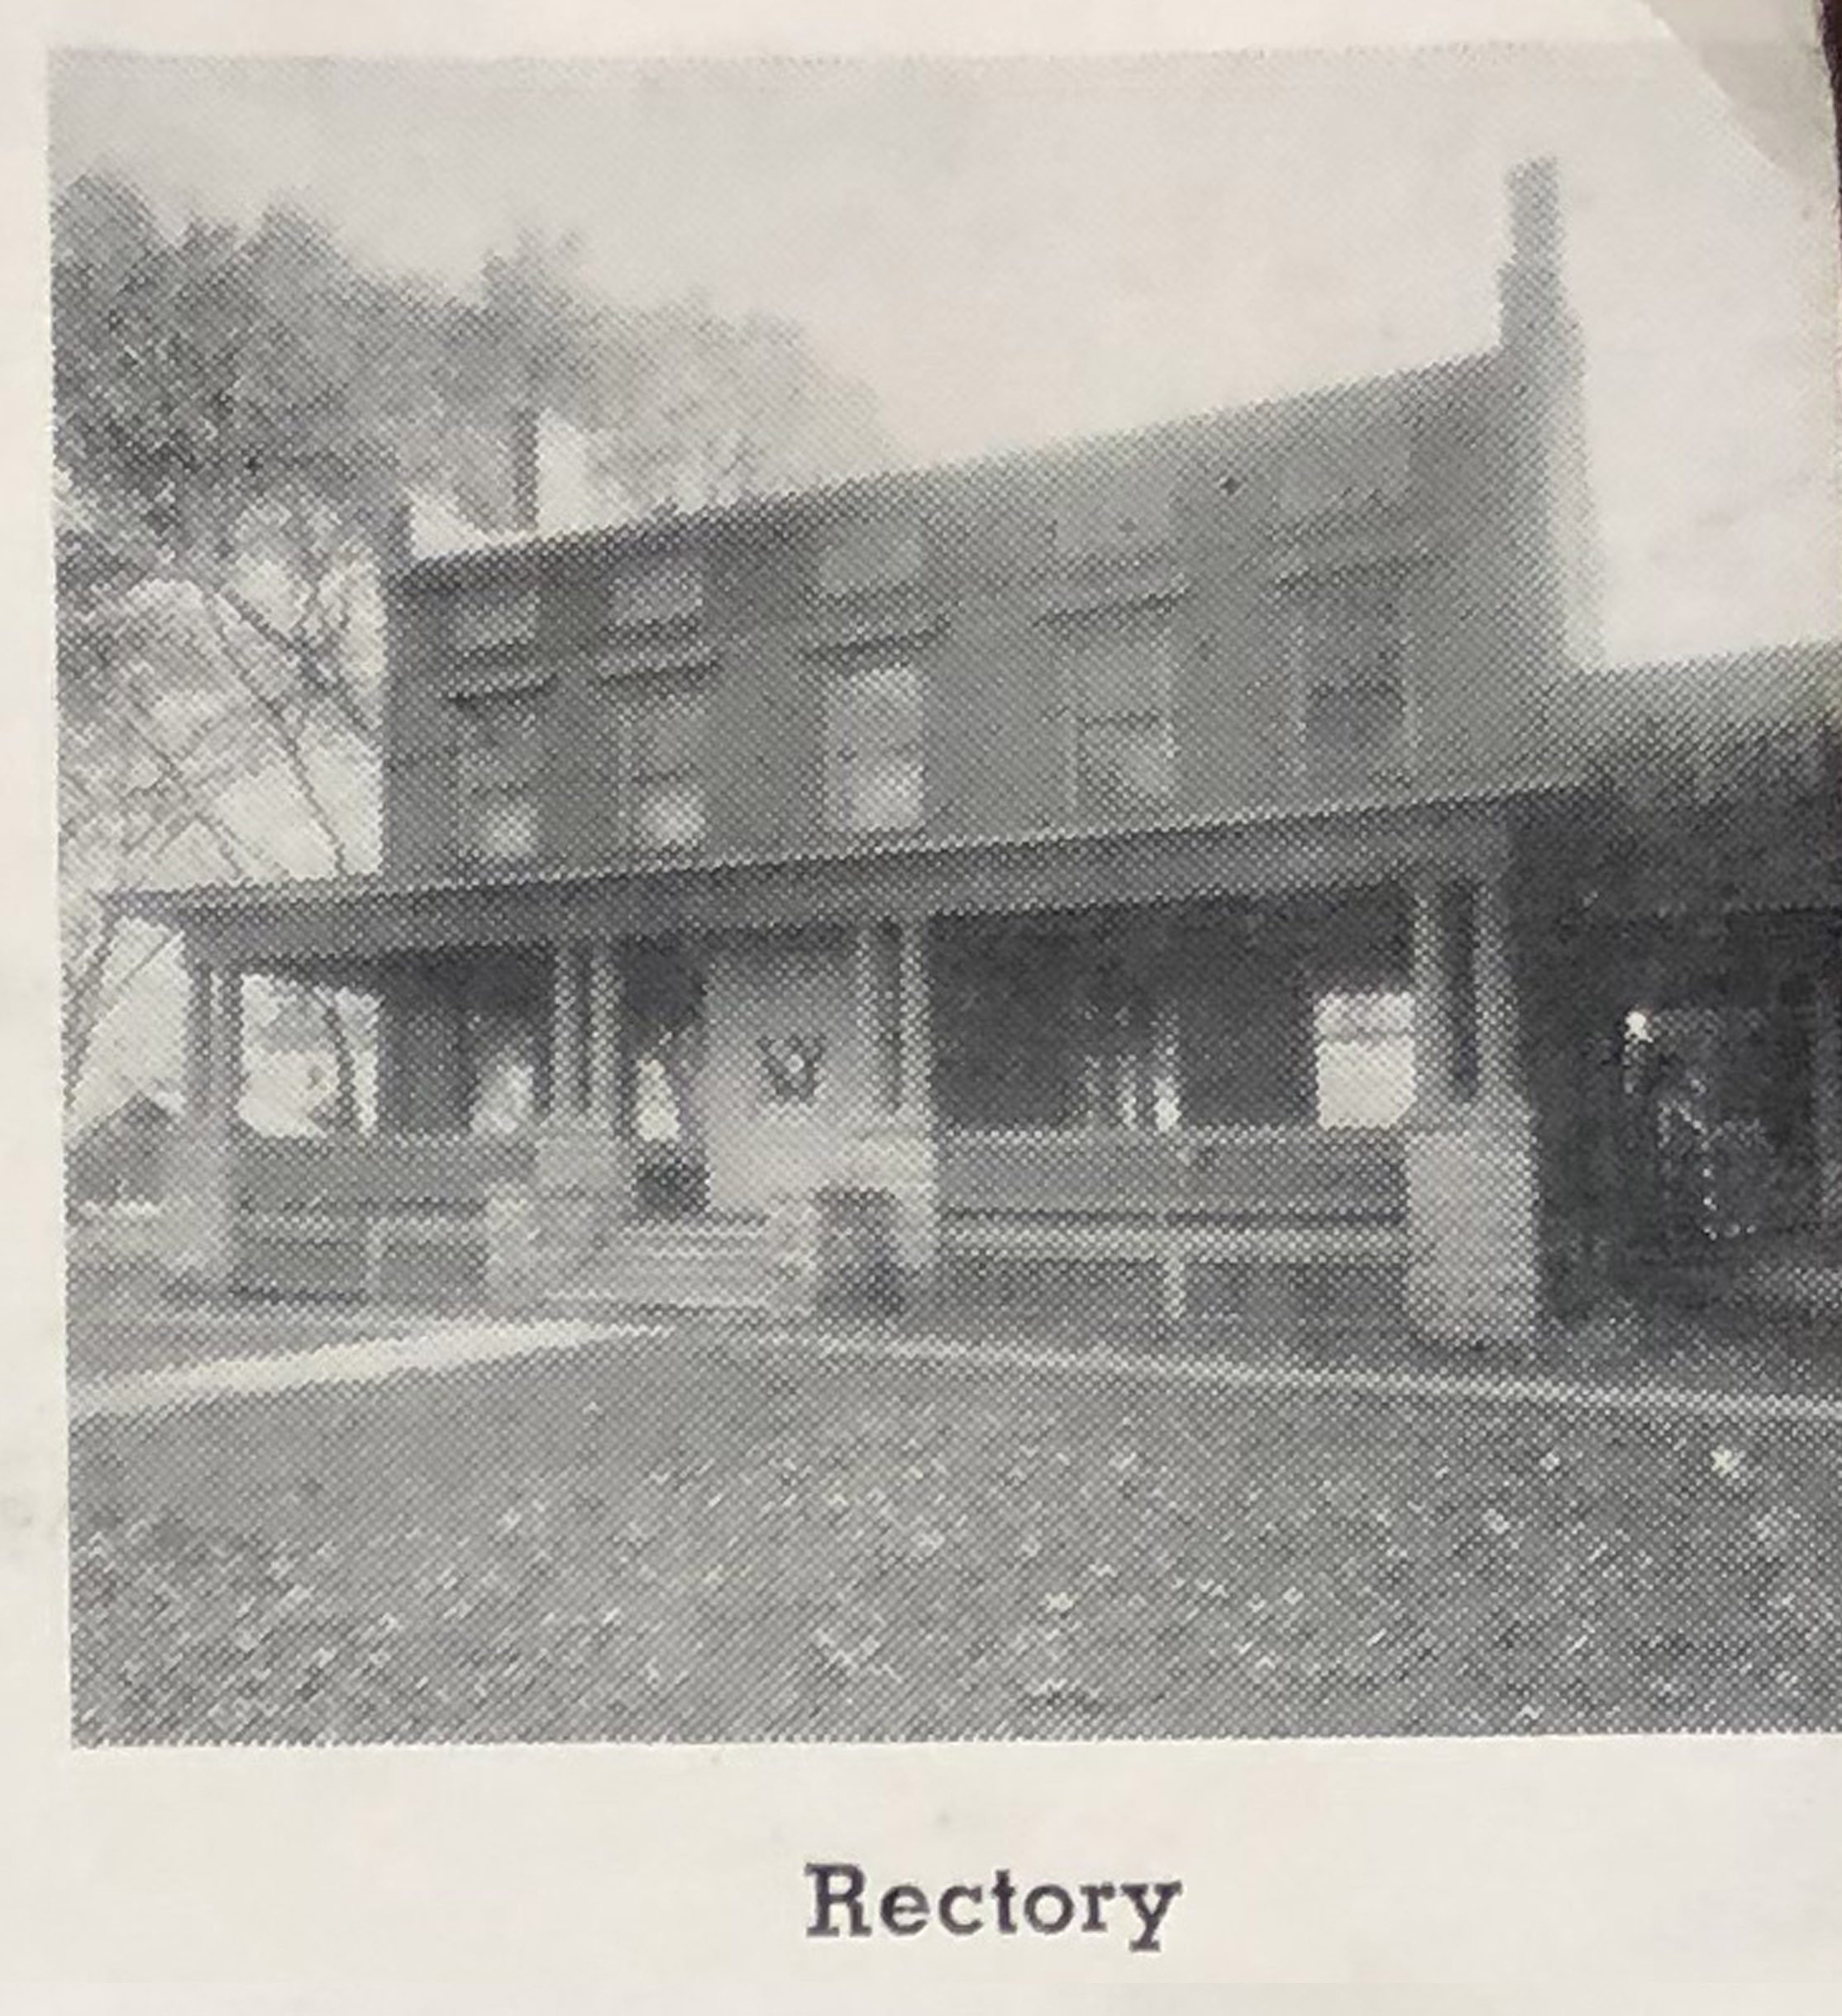 Sacred Heart Rectory, early photo.